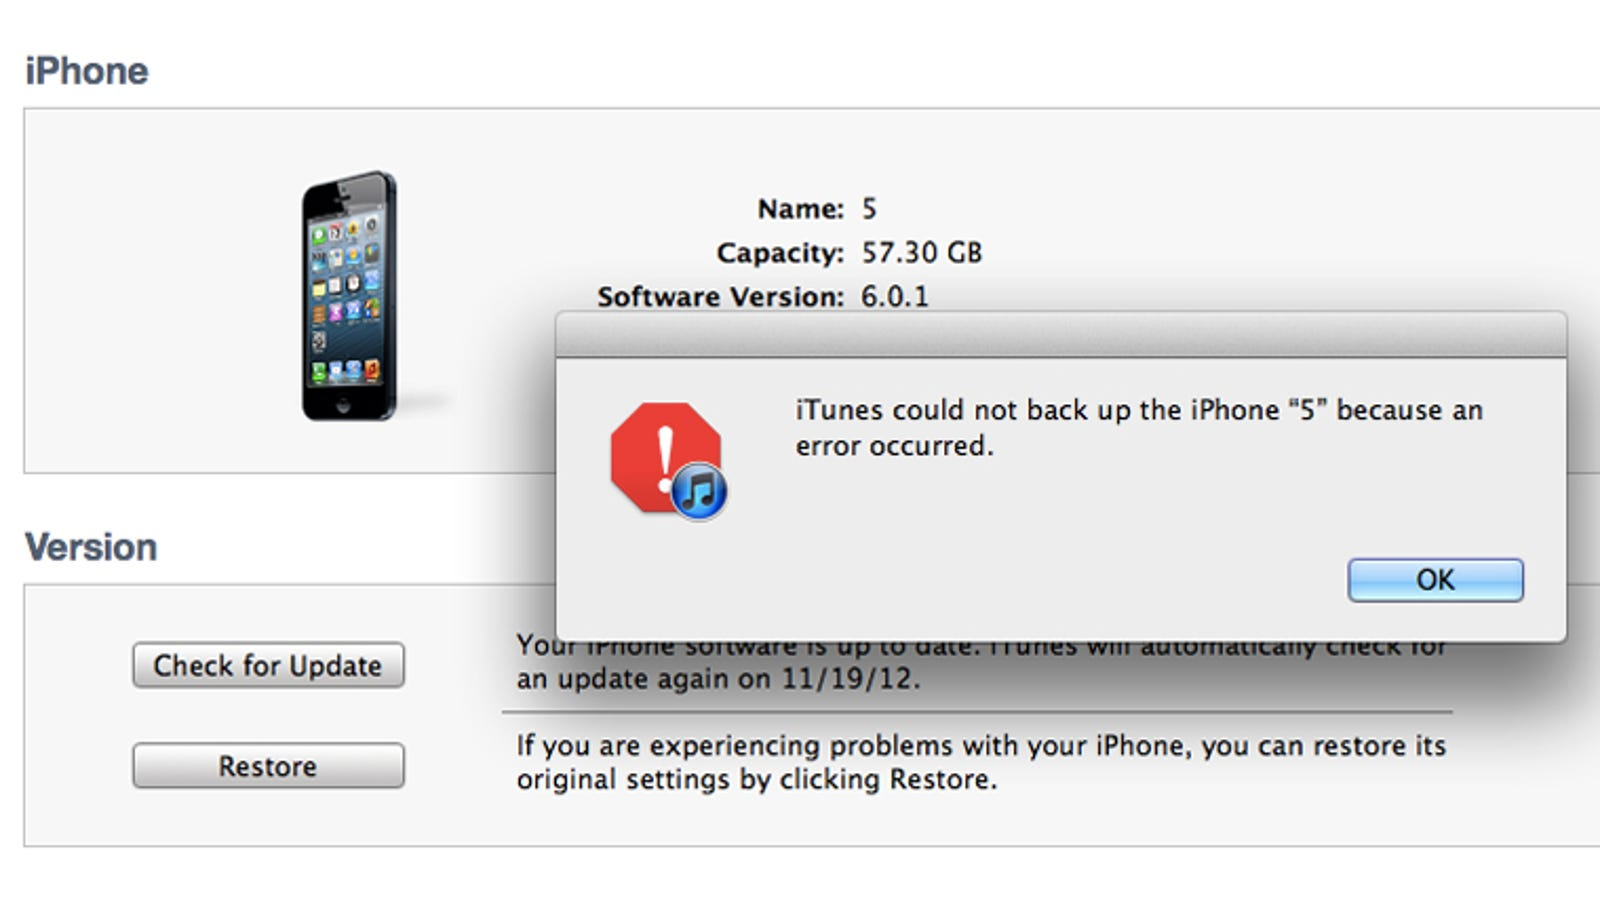 Have You Been Able to Back Up Your iPhone 5 Since Updating